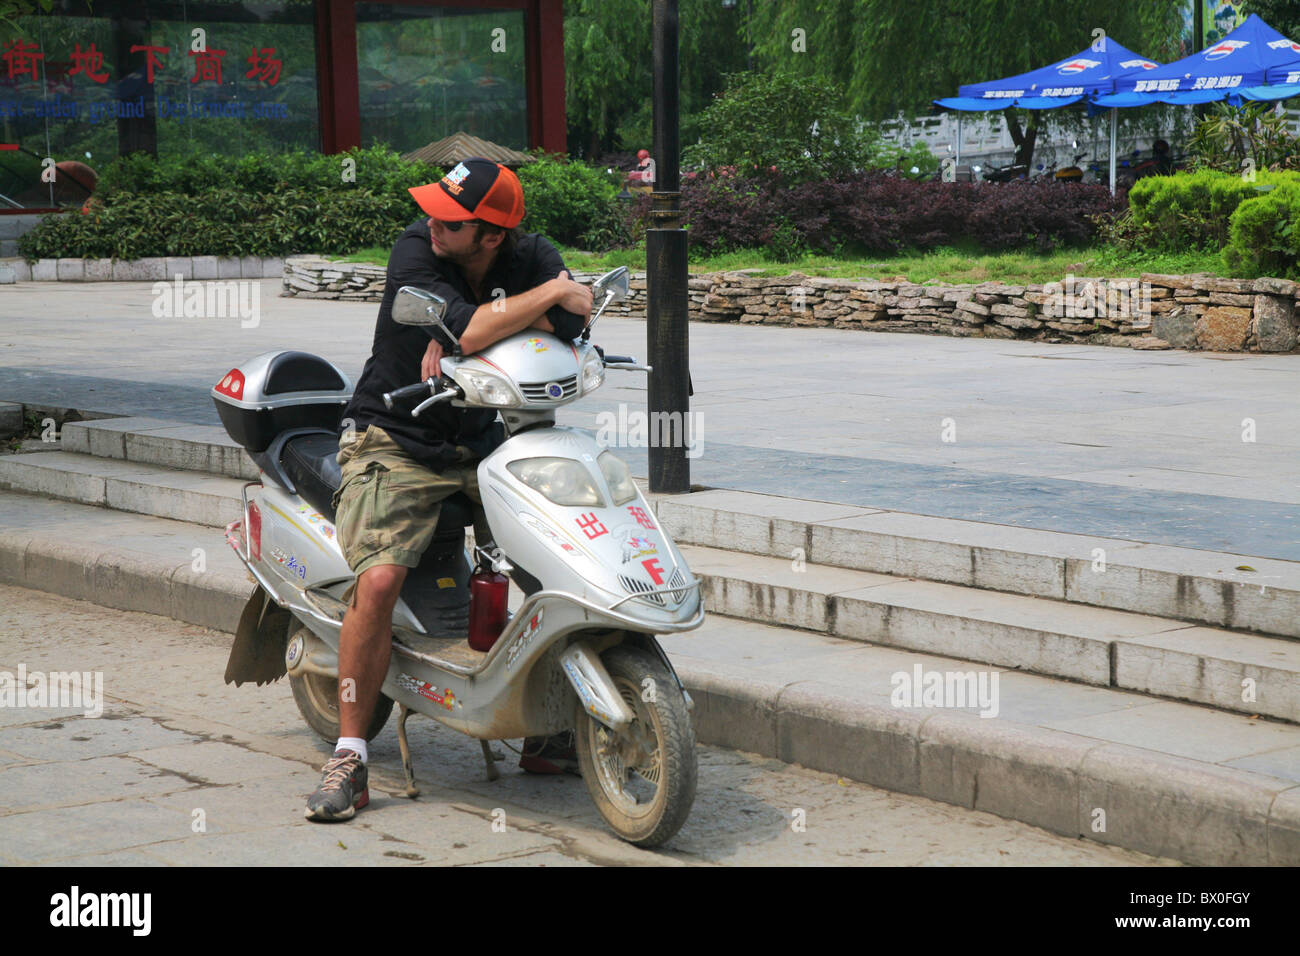 Caucasian tourist on a rented motorcycle, West Street, Yangshuo, Guilin, Guangxi Province, China - Stock Image